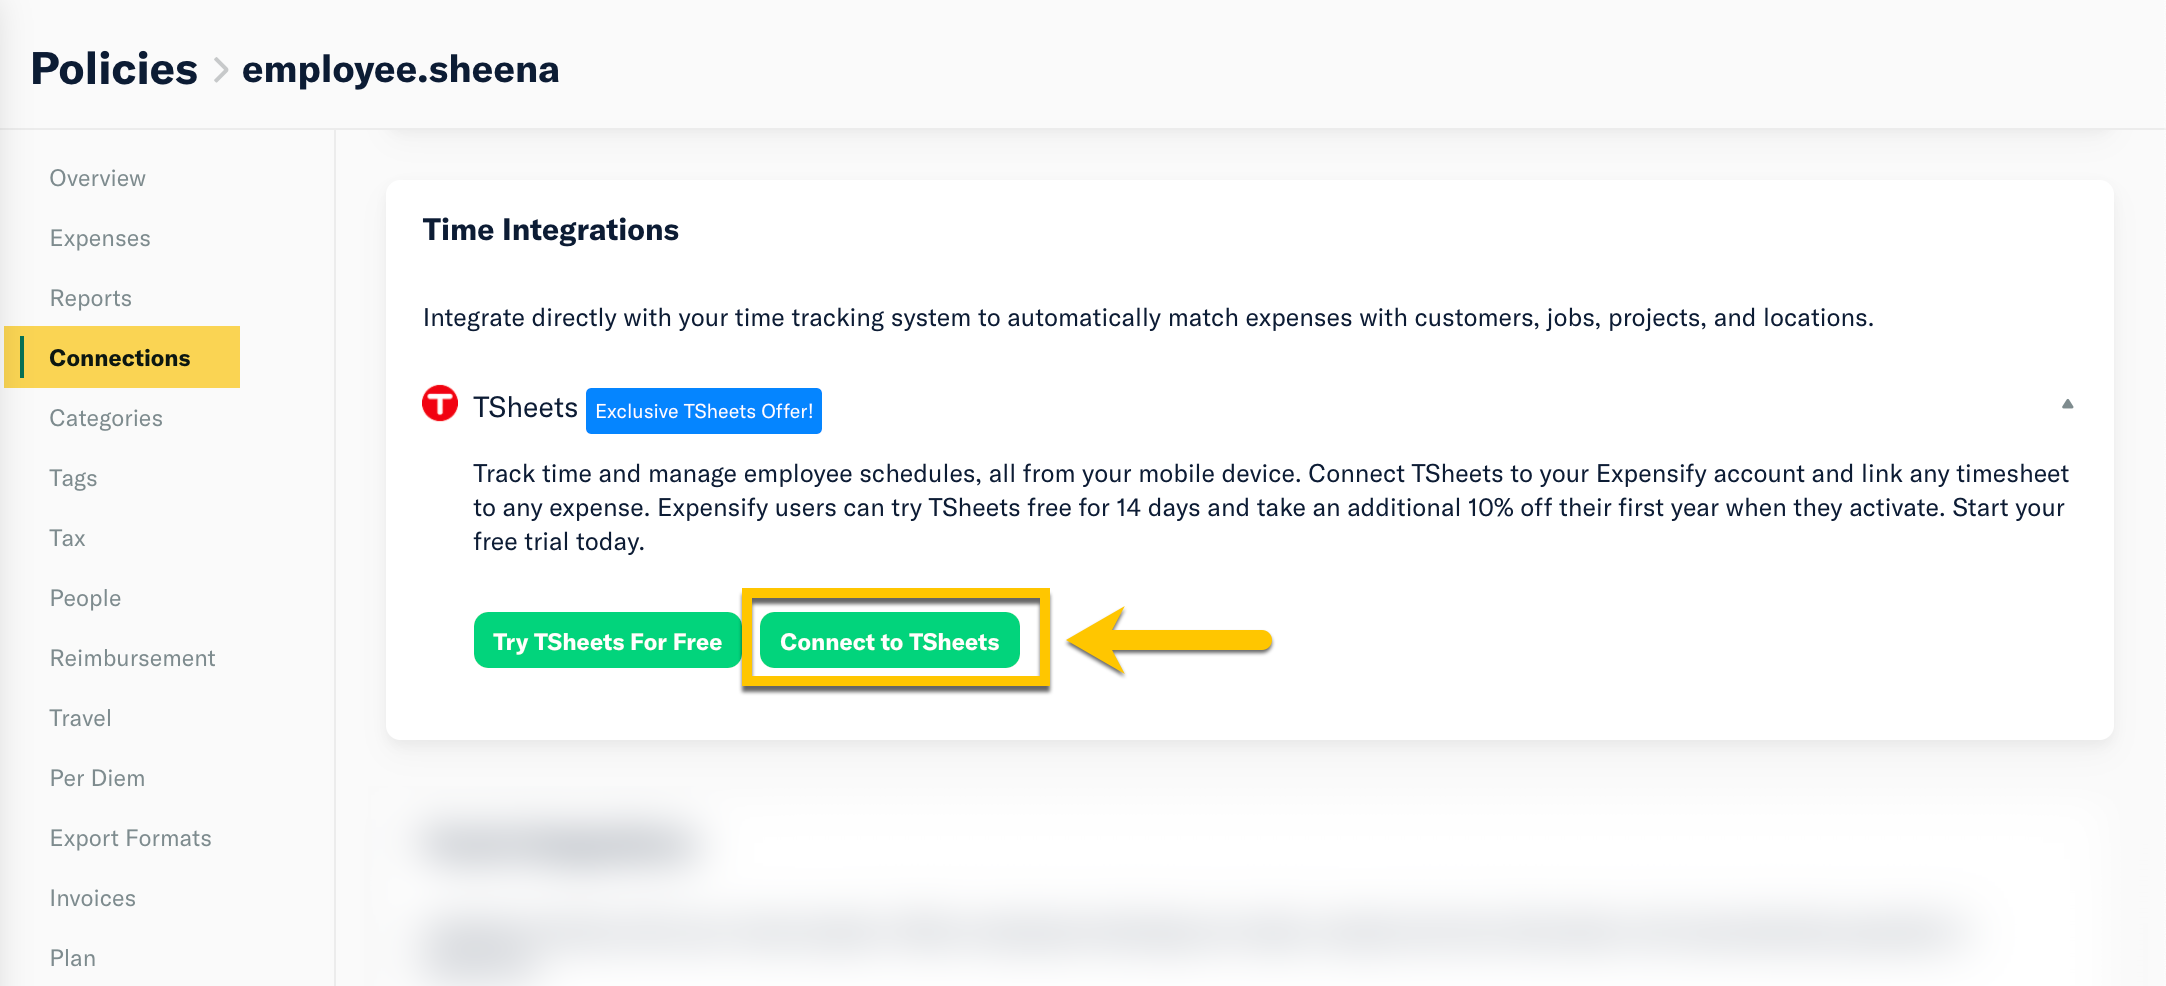 Screenshot of the an Expensify policy. An option in a left-hand menu called Connections is highlighted. On the right there is the title Time Intergations and below that a connection option for TSheets. A button to connect to TSheets is highlighted with an arrow pointing to it.